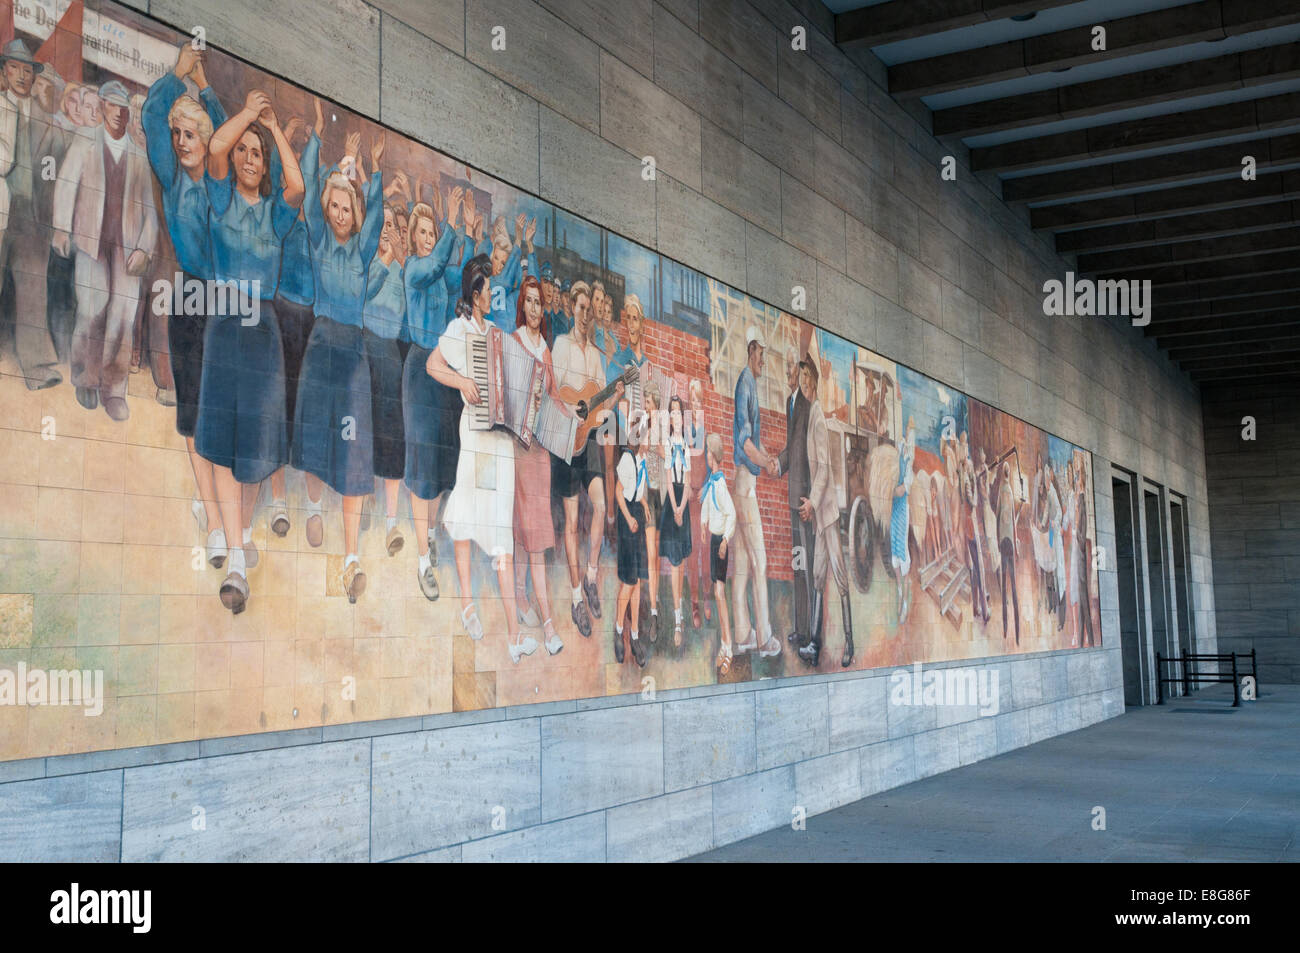 East German communist propaganda mural on wall of Finance Ministry - Stock Image